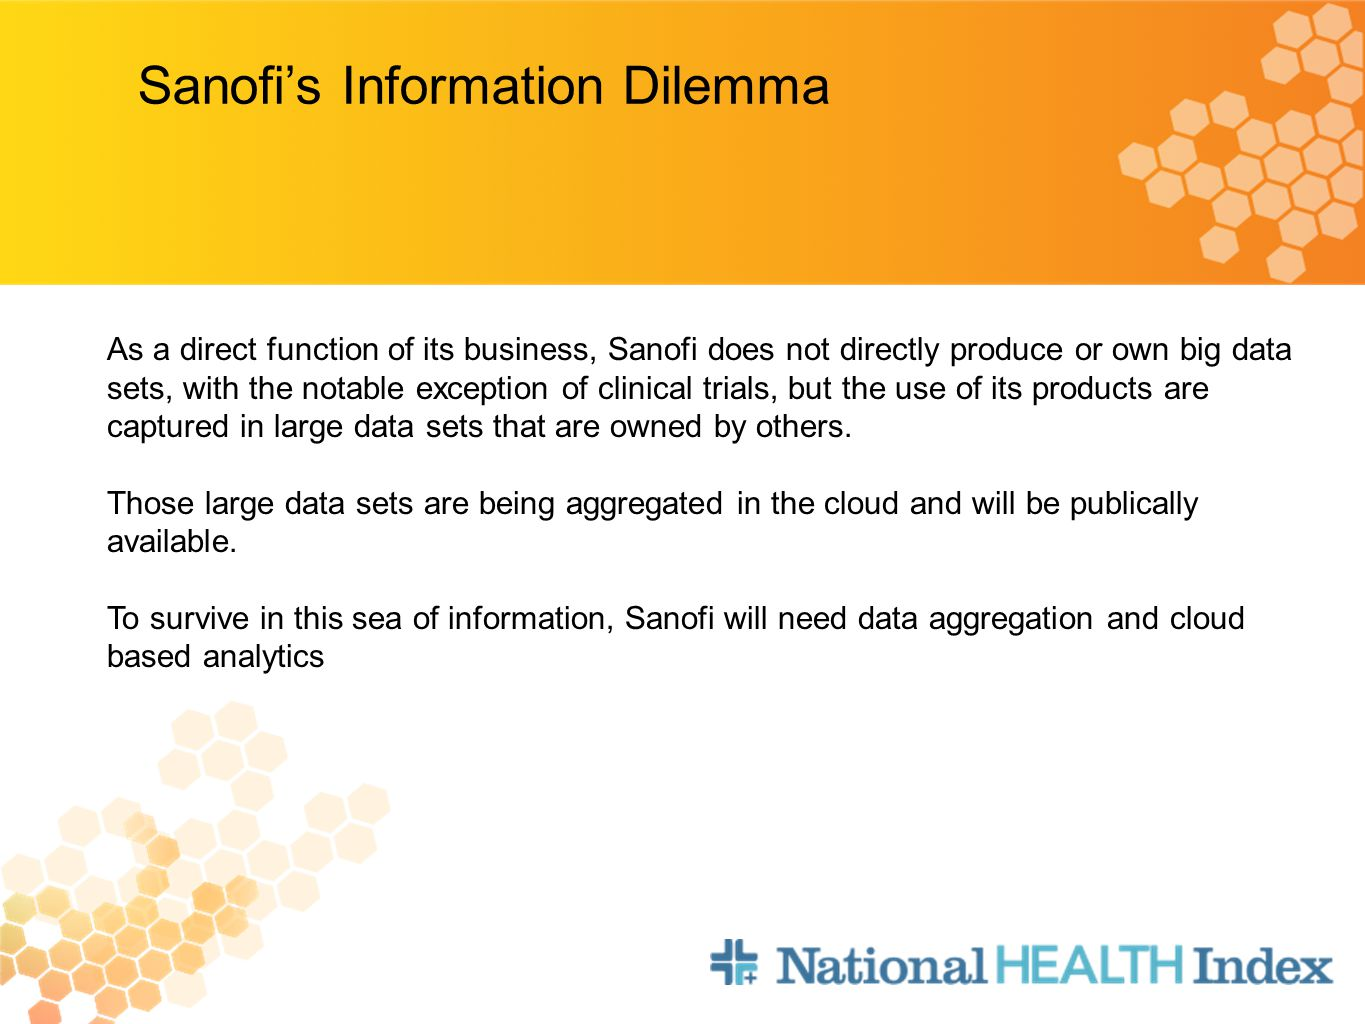 Sanofi's Information Dilemma As a direct function of its business, Sanofi does not directly produce or own big data sets, with the notable exception of clinical trials, but the use of its products are captured in large data sets that are owned by others.